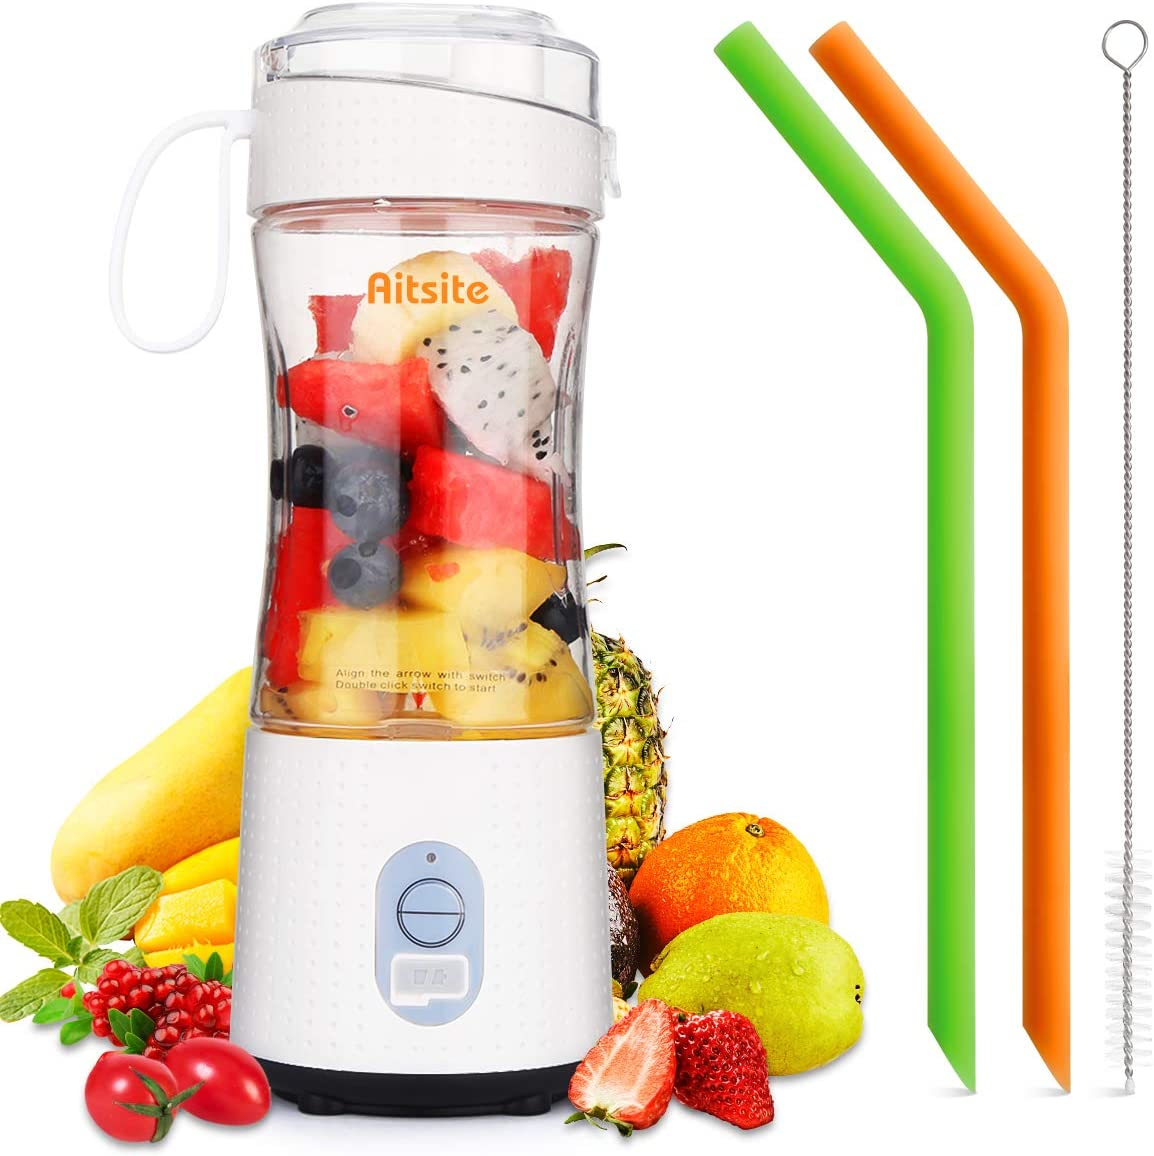 Aitsite Portable Blender, Personal Mixer Fruit Rechargeable USB with 2 Straws, Mini Blender for Smoothie, Fruit Juice, Milk Shakes 380ml, Six 3D Blades for Great Mixing (White)